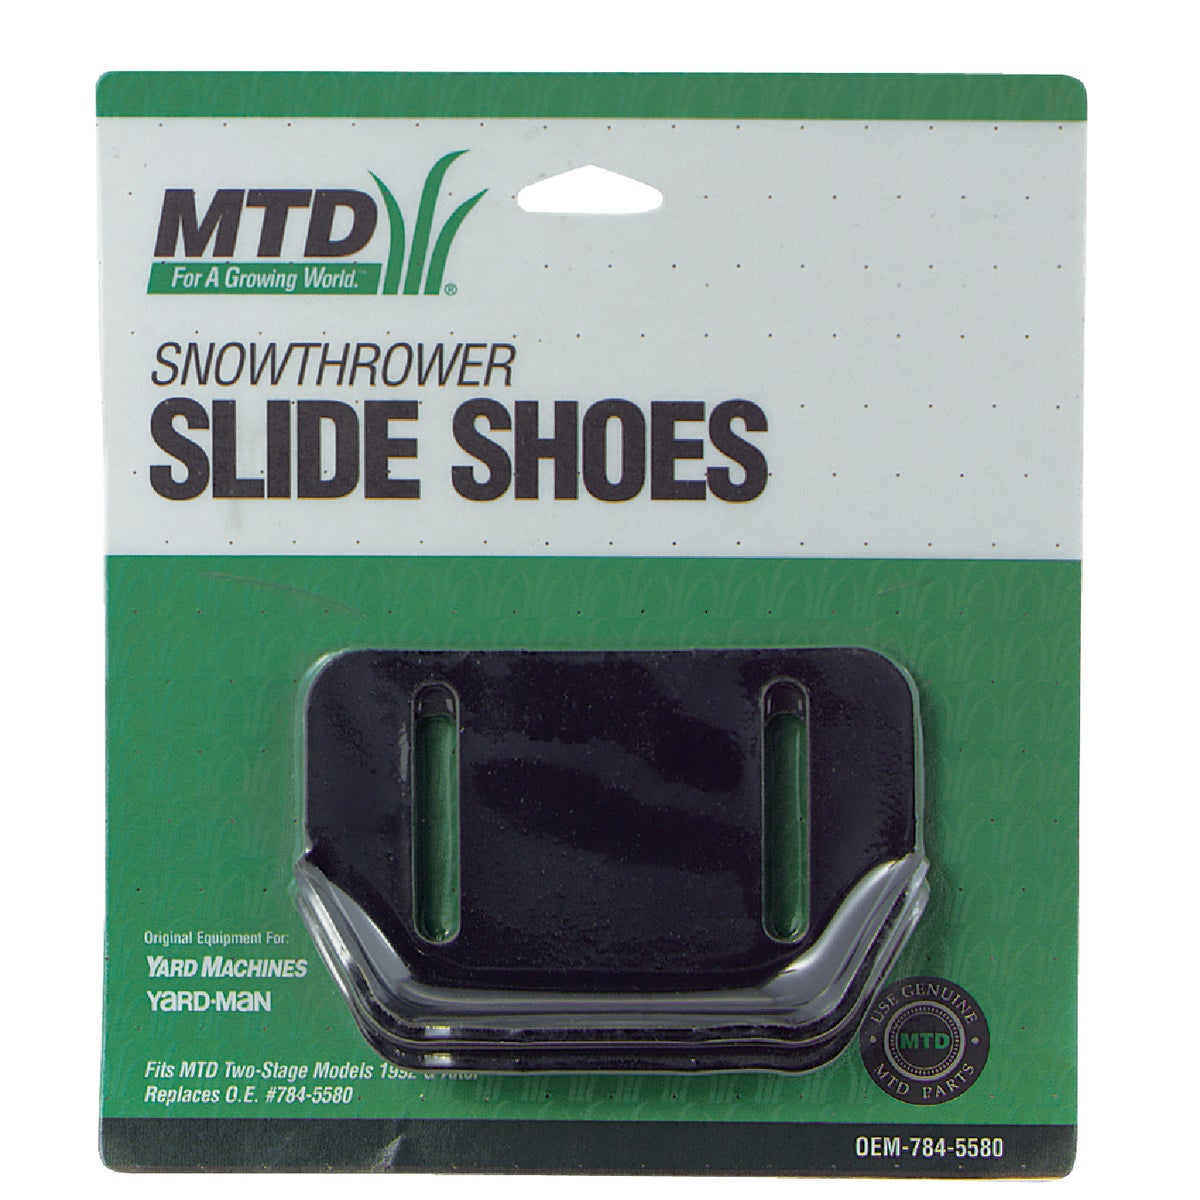 MTD SNOWTHRW SLIDE SHOES